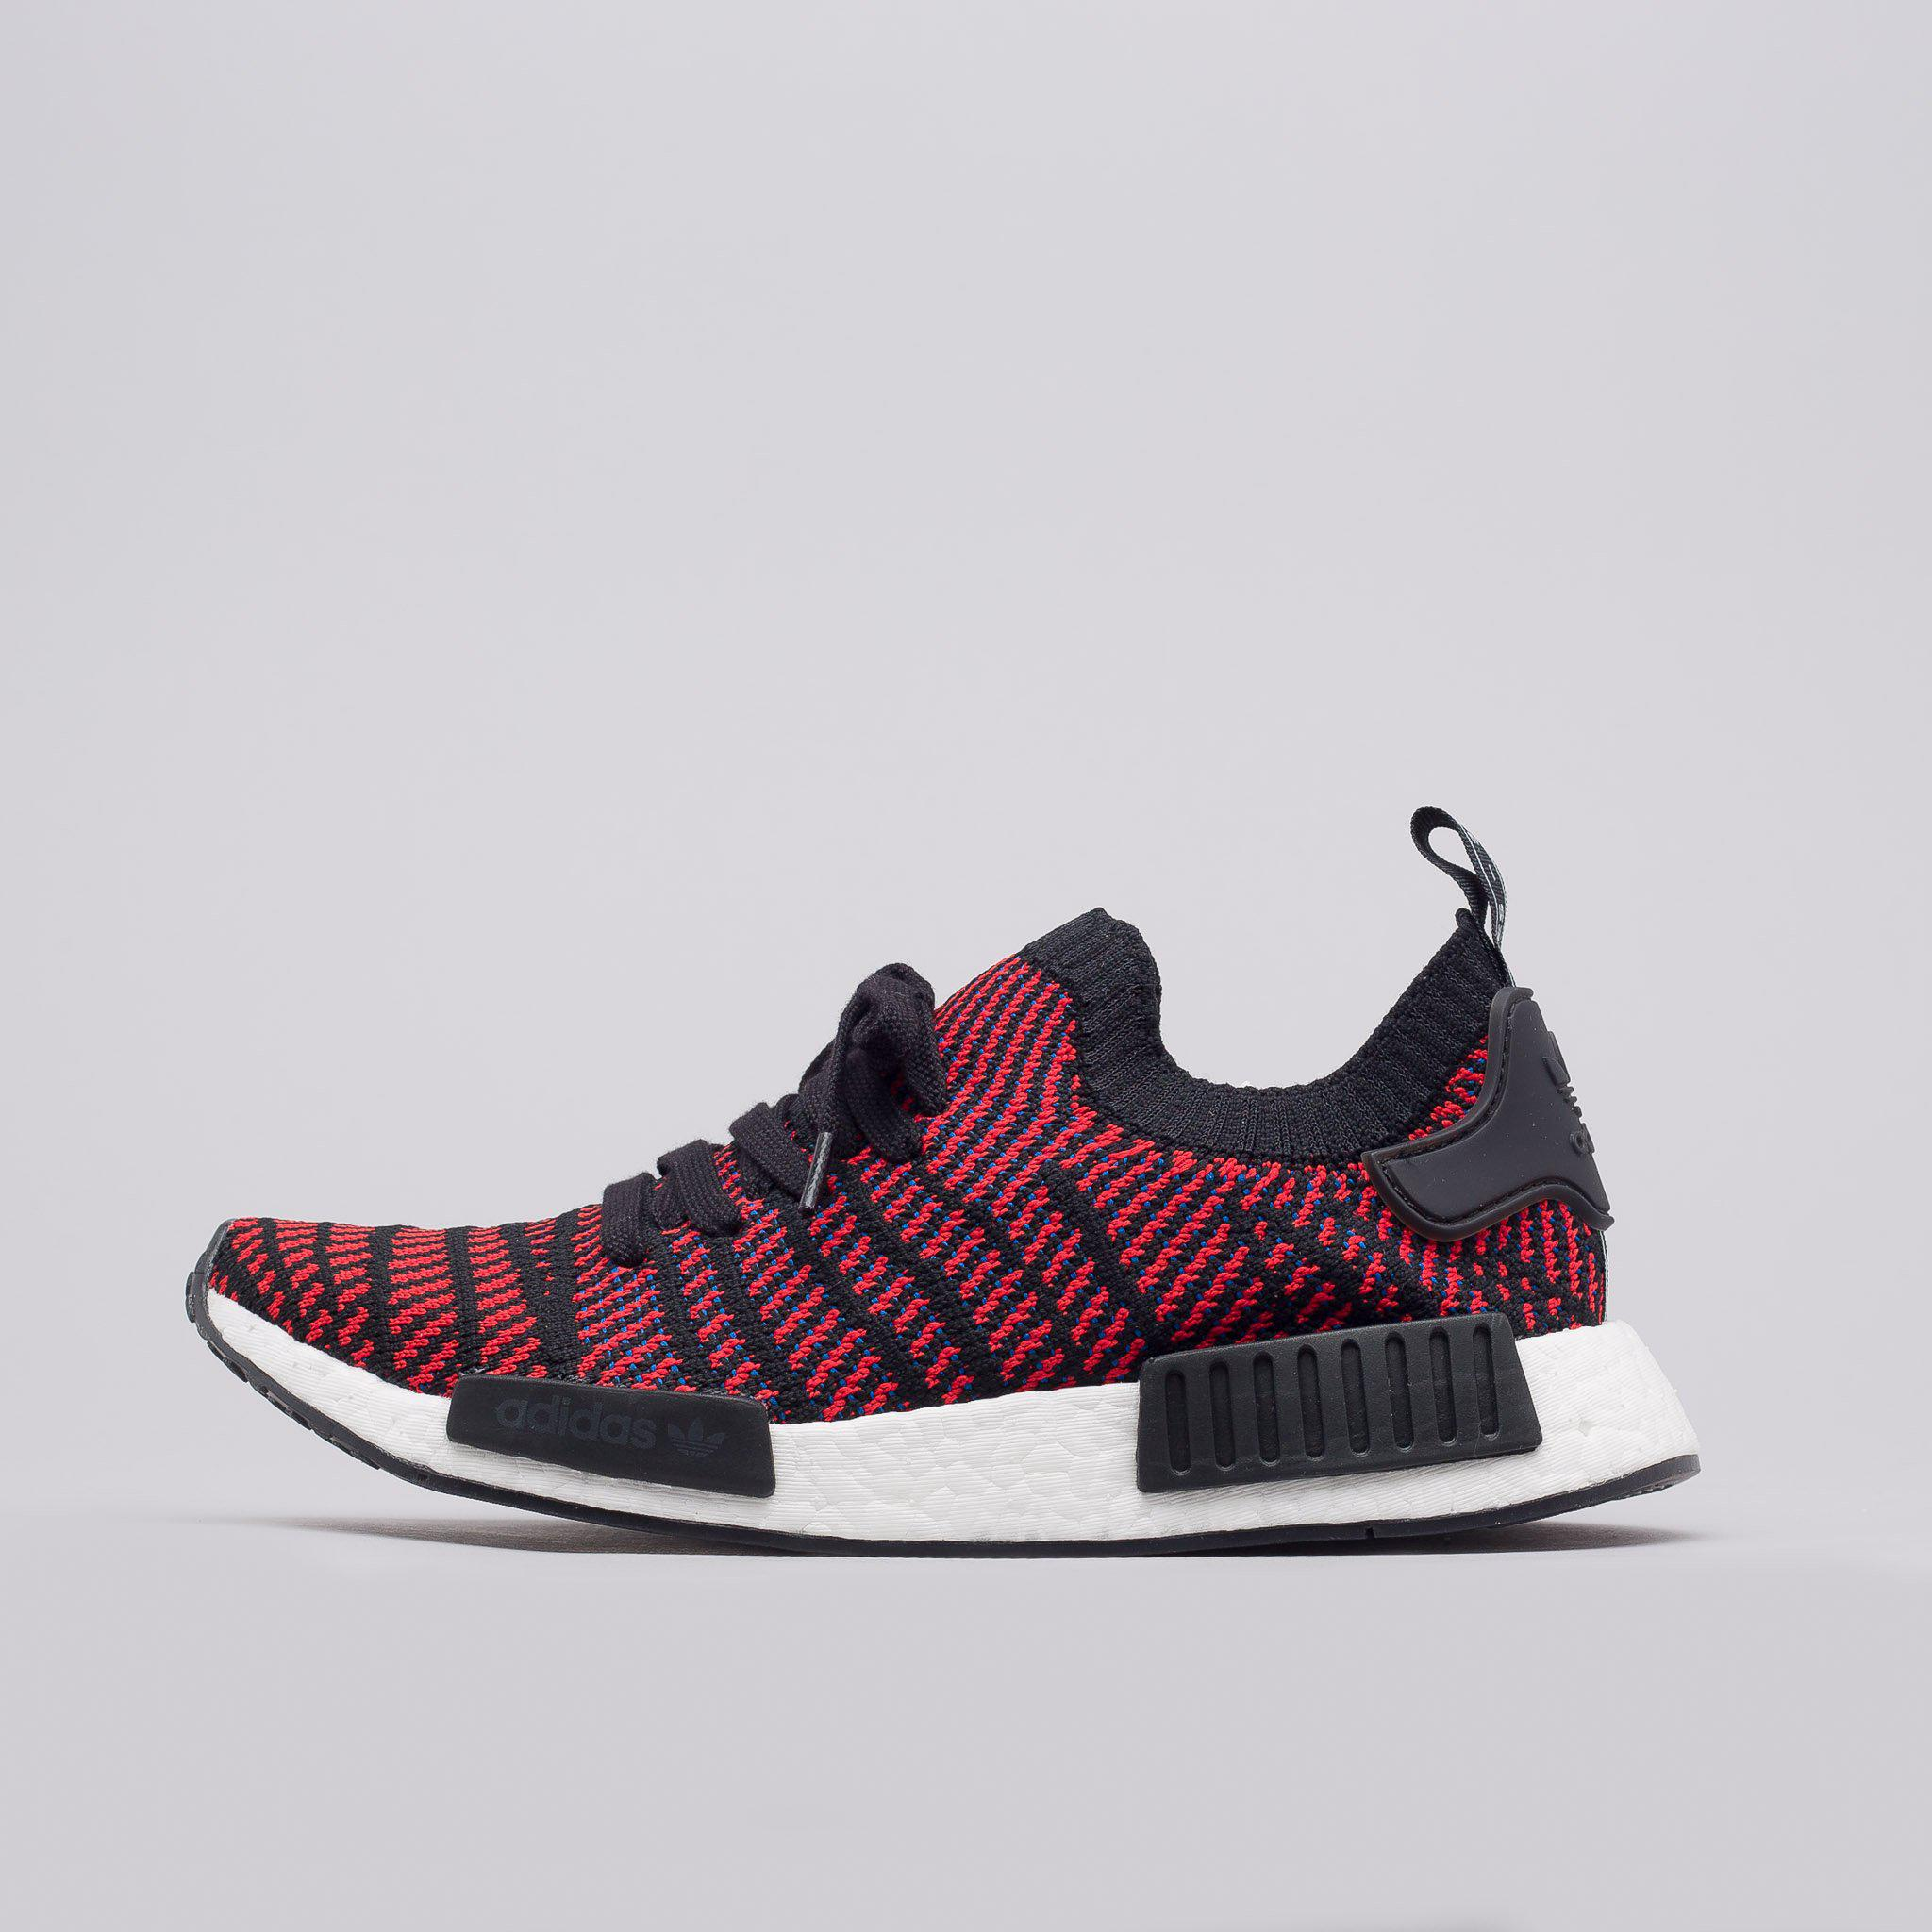 Lyst - adidas Nmd R1 Primeknit Stlt In Core Black red blue in Red ... 151b9d66e38b